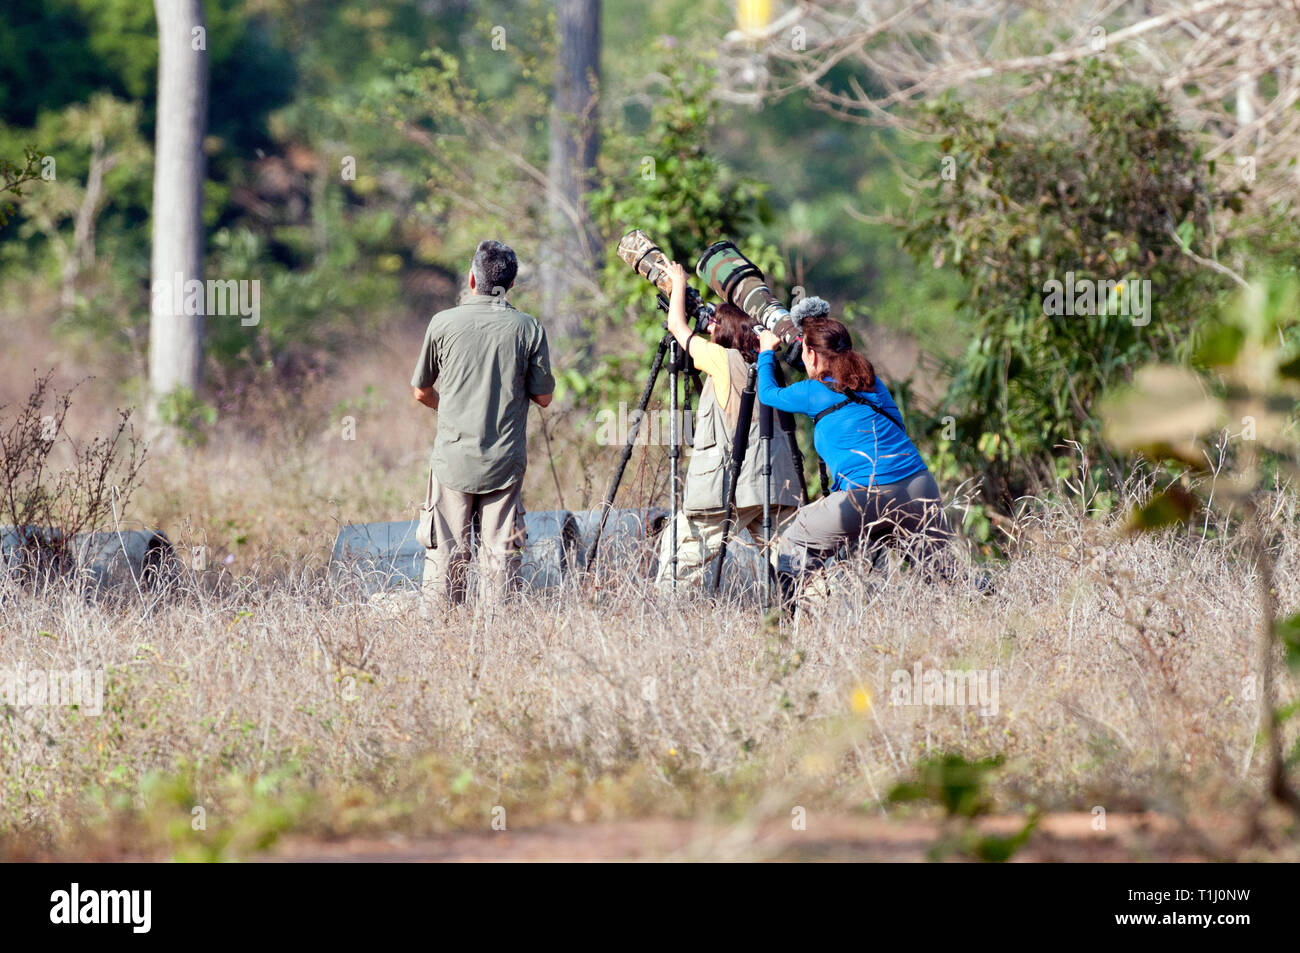 Photographers photographing a bird in The Pantanal in Brazil - Stock Image